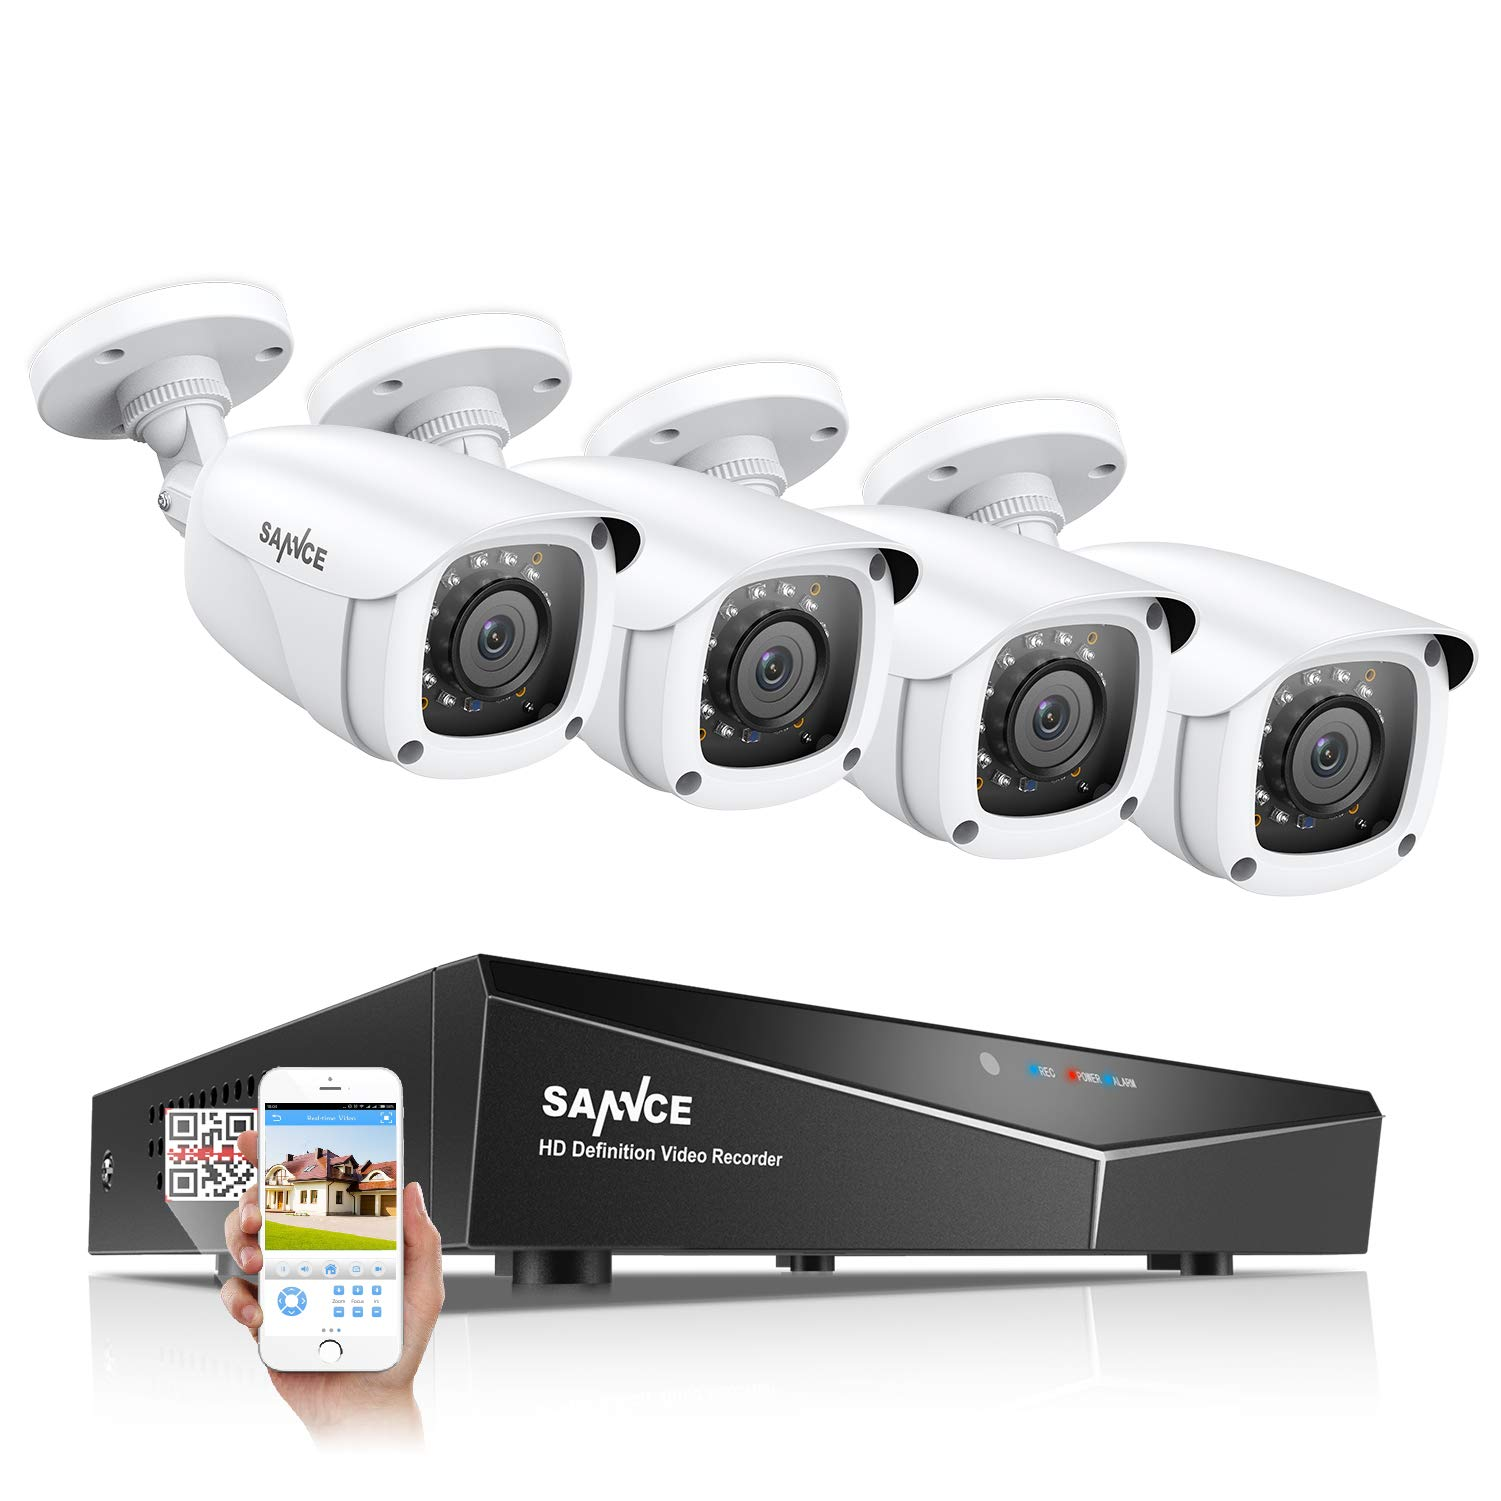 SANNCE 8CH 1080N Surveillance DVR System and (4) 720P 1.0MP HD-TVI Weatherproof CCTV Cameras, Infrared Superior Night Vision, P2P & QR Code Scan Remote Access, Security Wired Camera System (NO HDD) by SANNCE